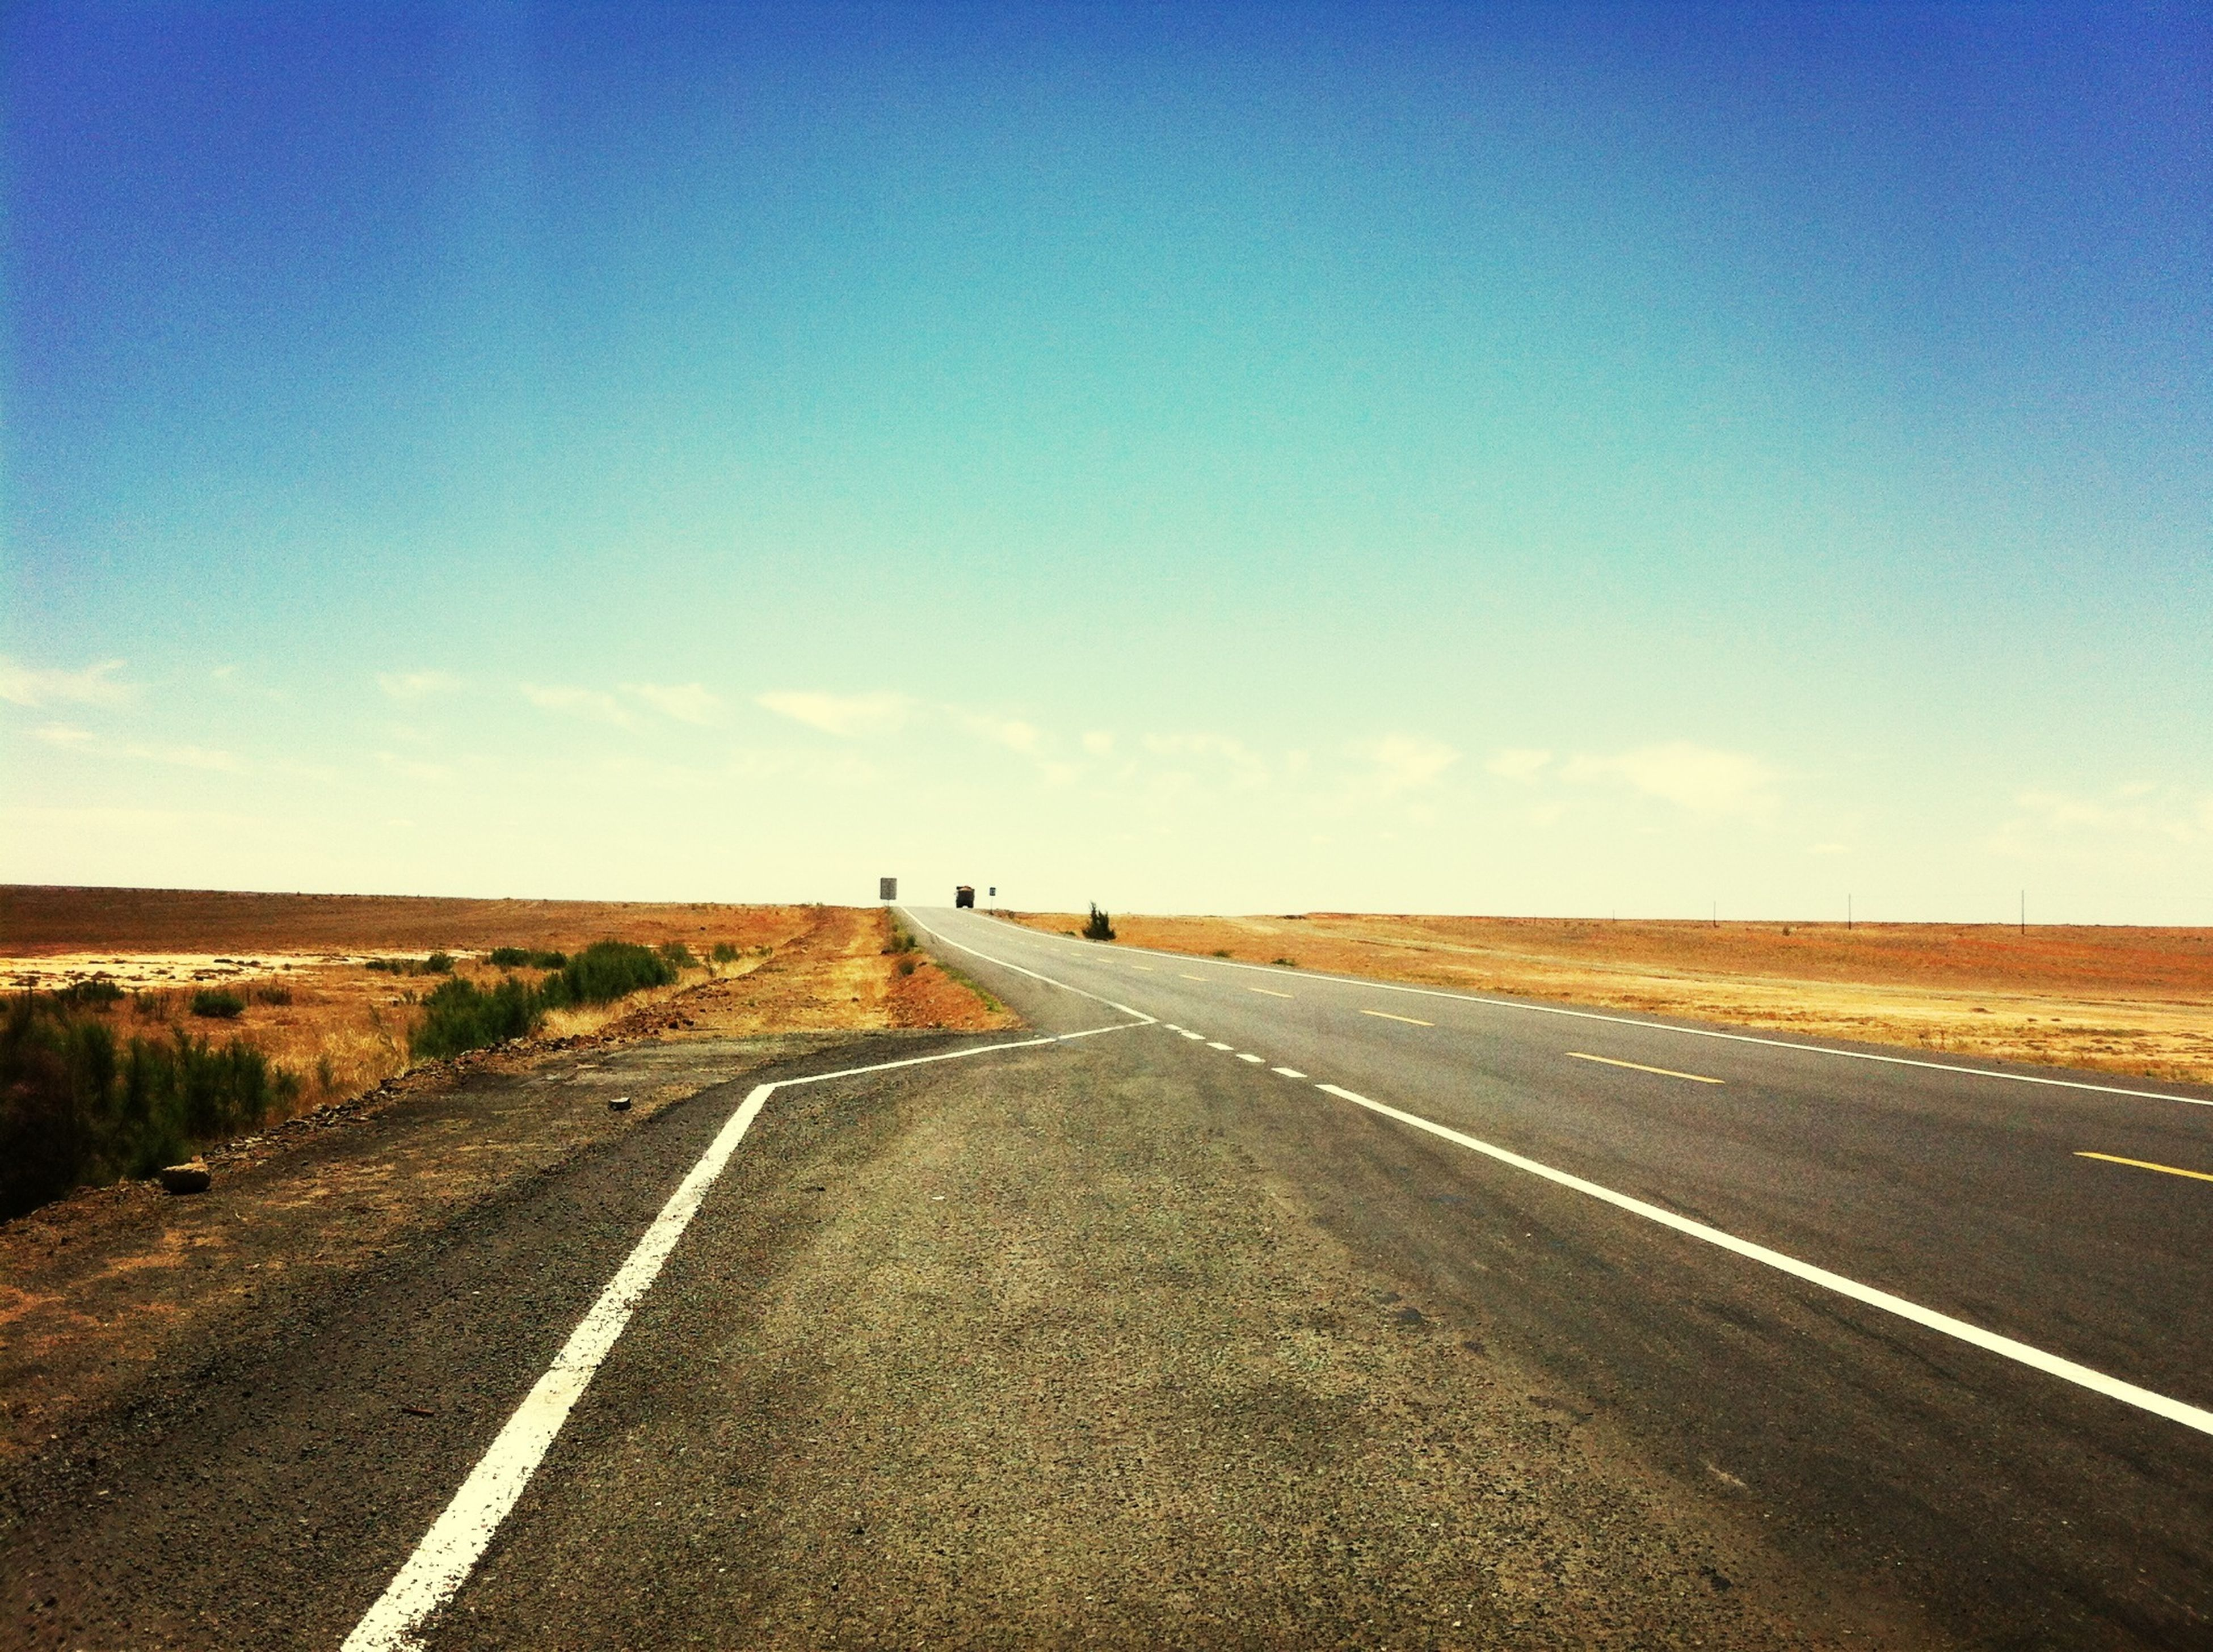 the way forward, road, transportation, diminishing perspective, road marking, vanishing point, country road, sky, landscape, empty road, asphalt, empty, tranquil scene, long, tranquility, horizon over land, highway, blue, nature, copy space